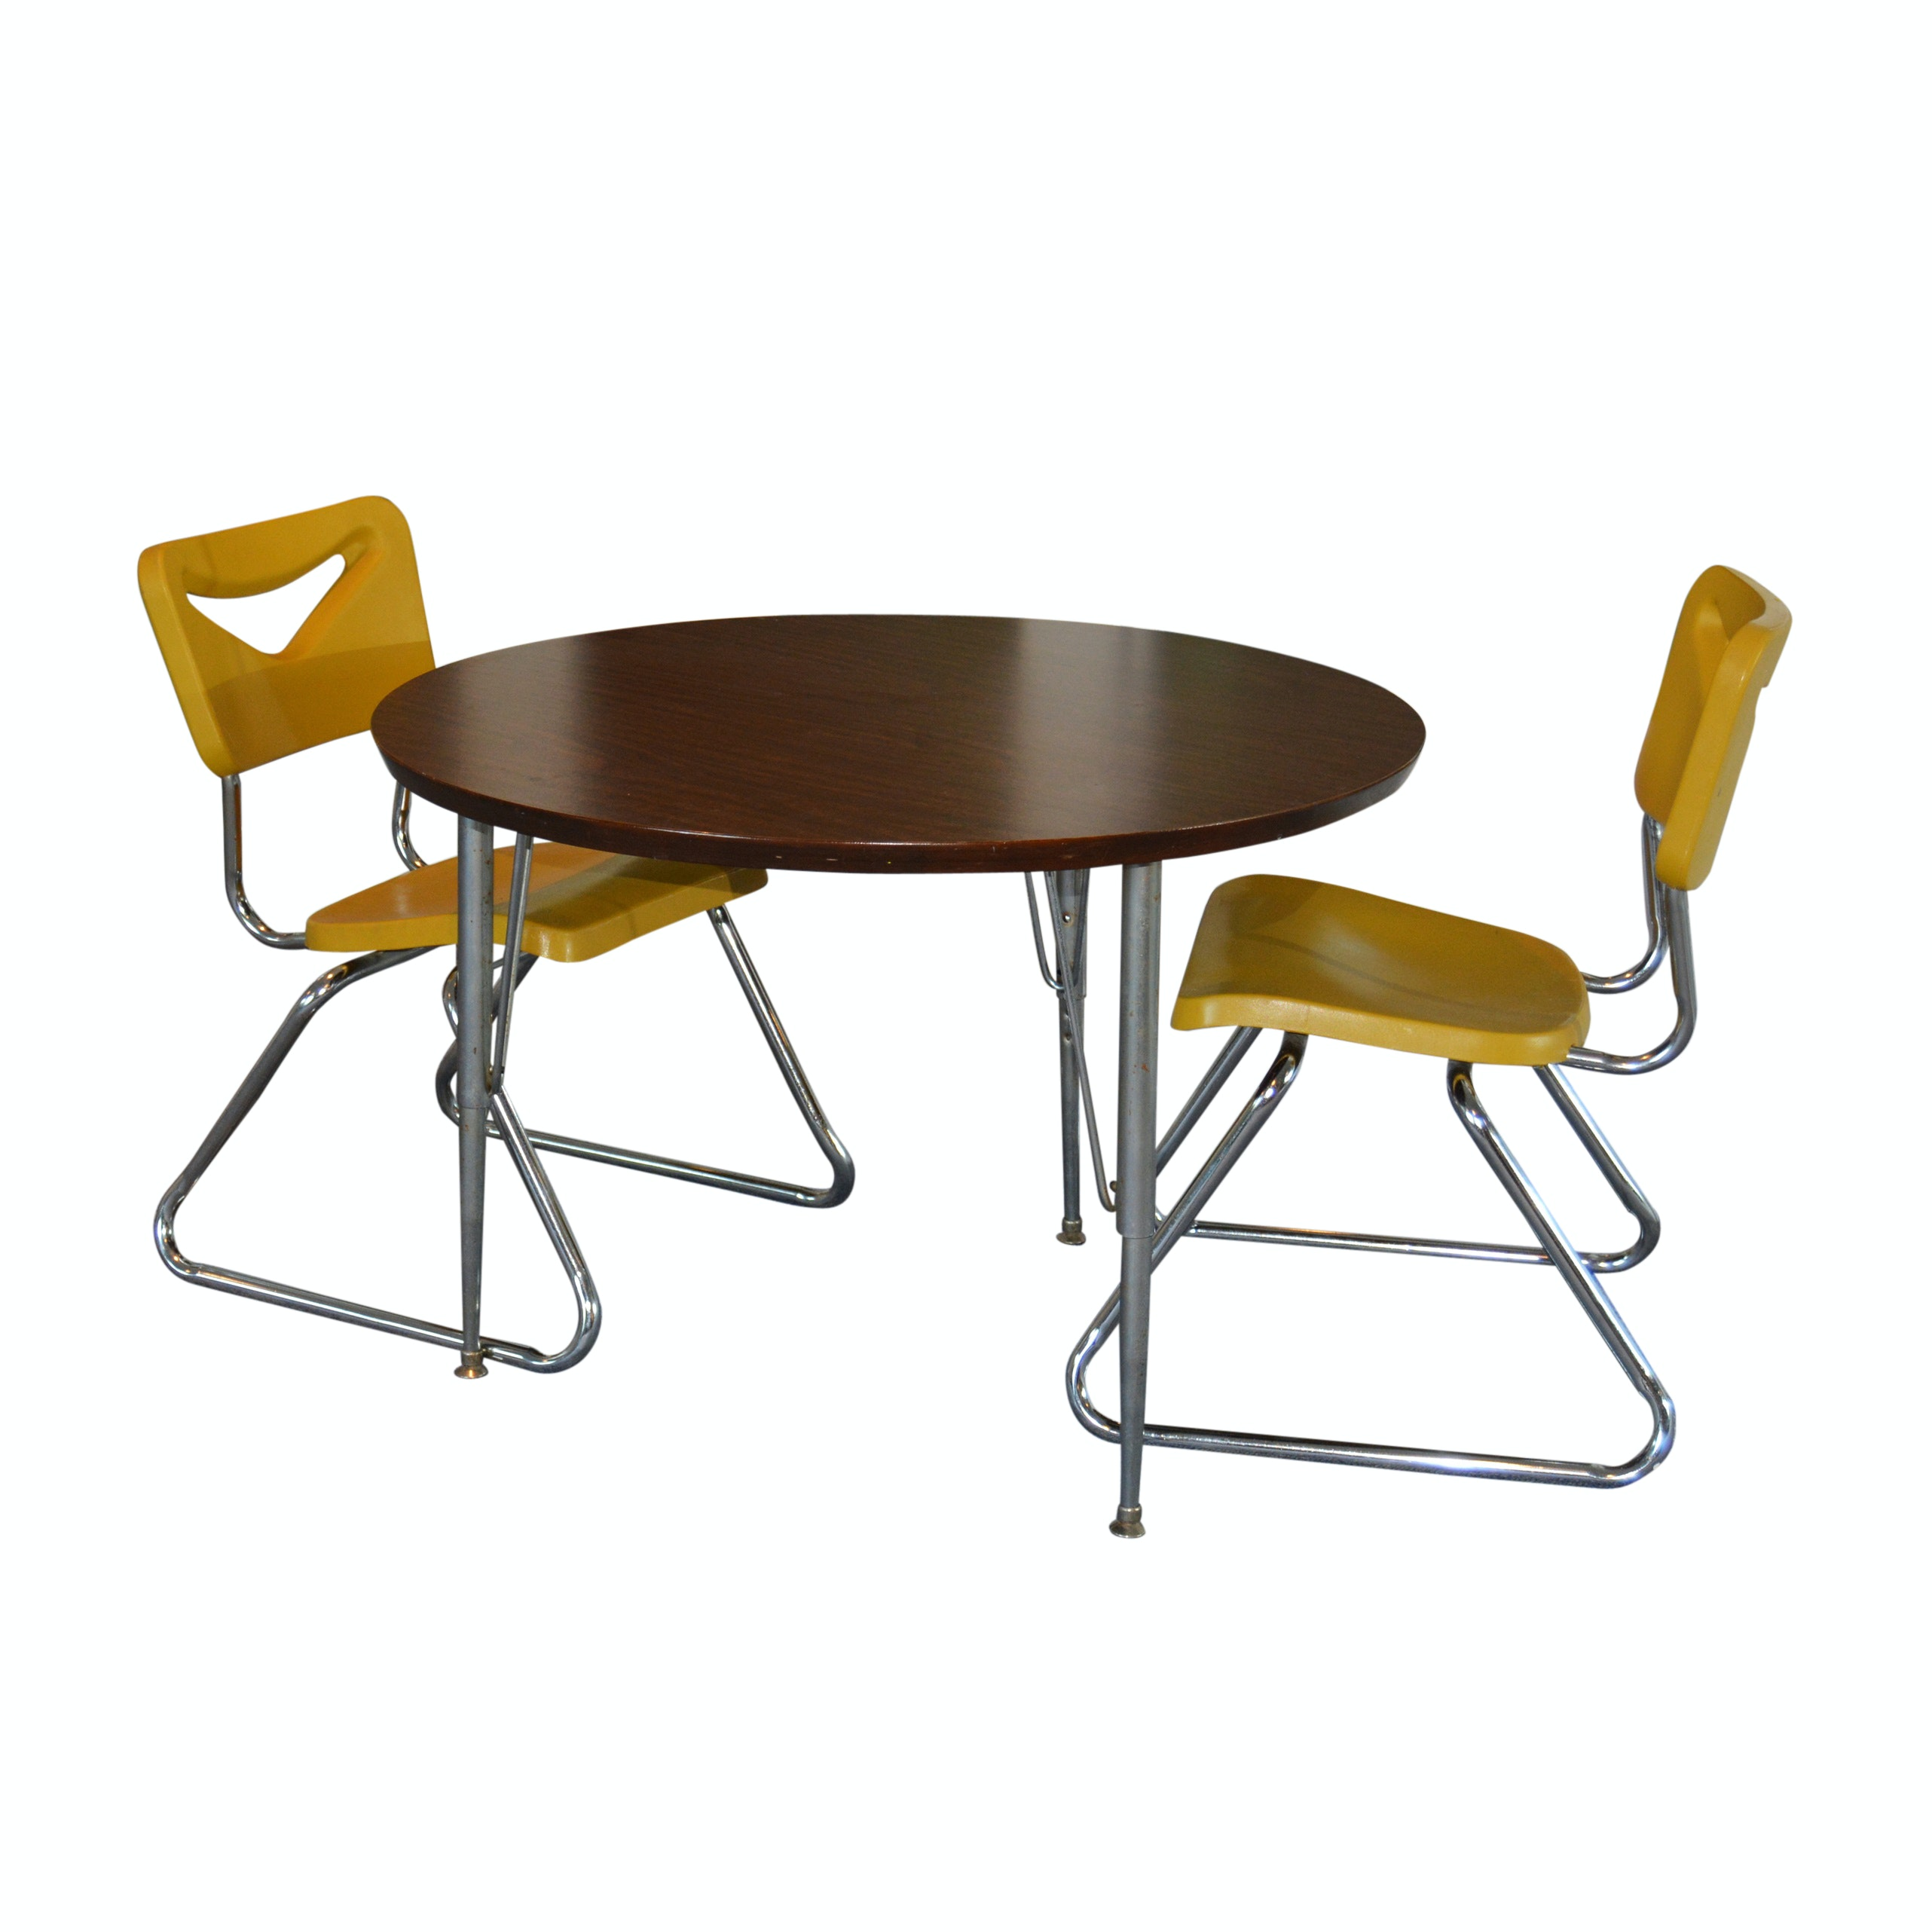 Student Round Table and Chairs